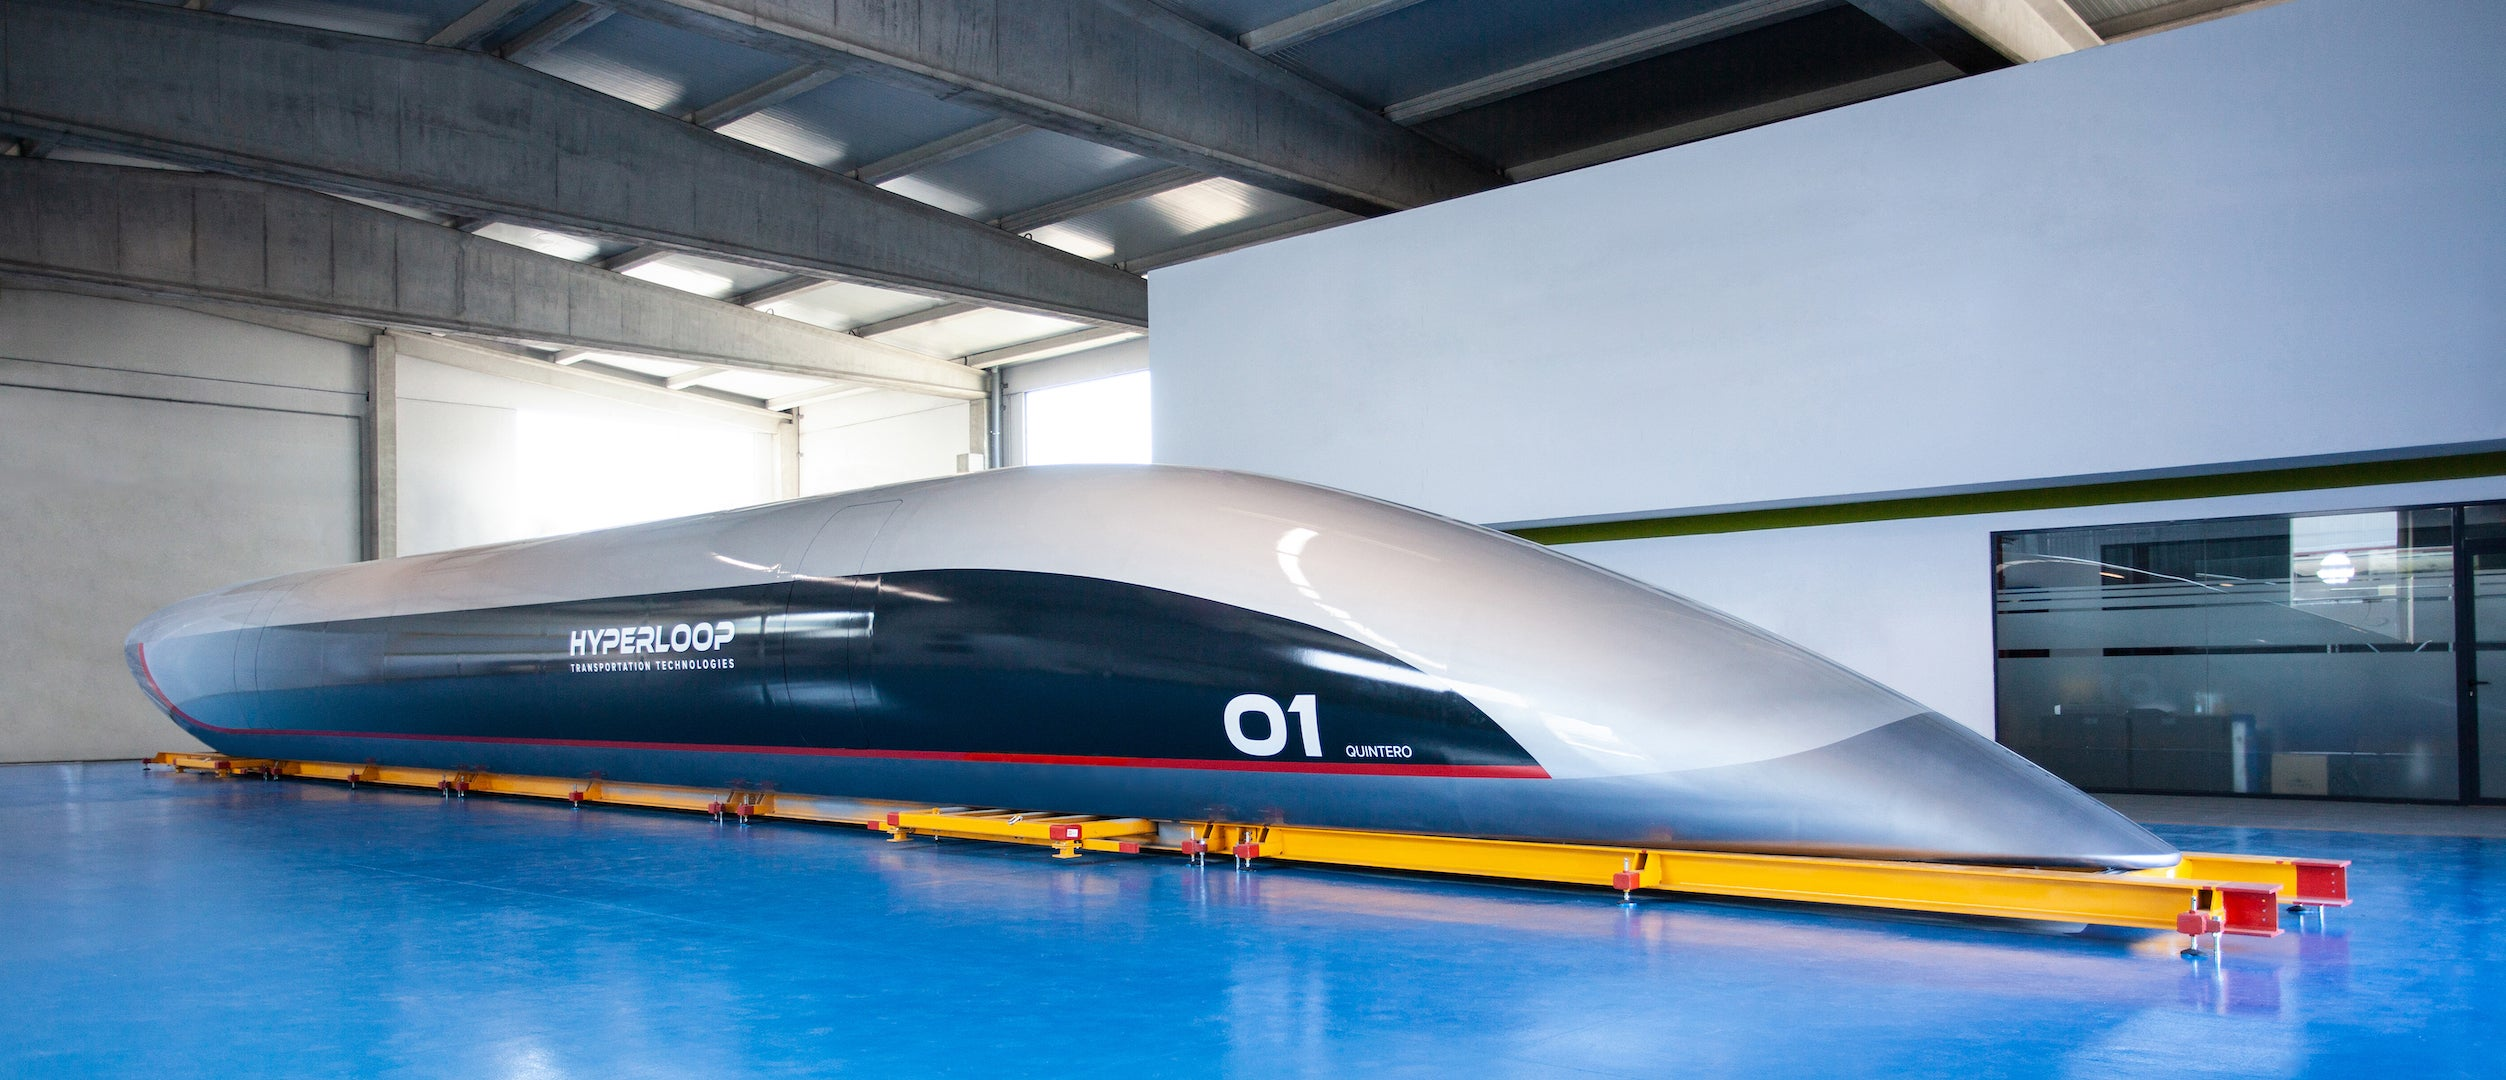 I Stepped Into The World's First Full-Size Hyperloop Capsule